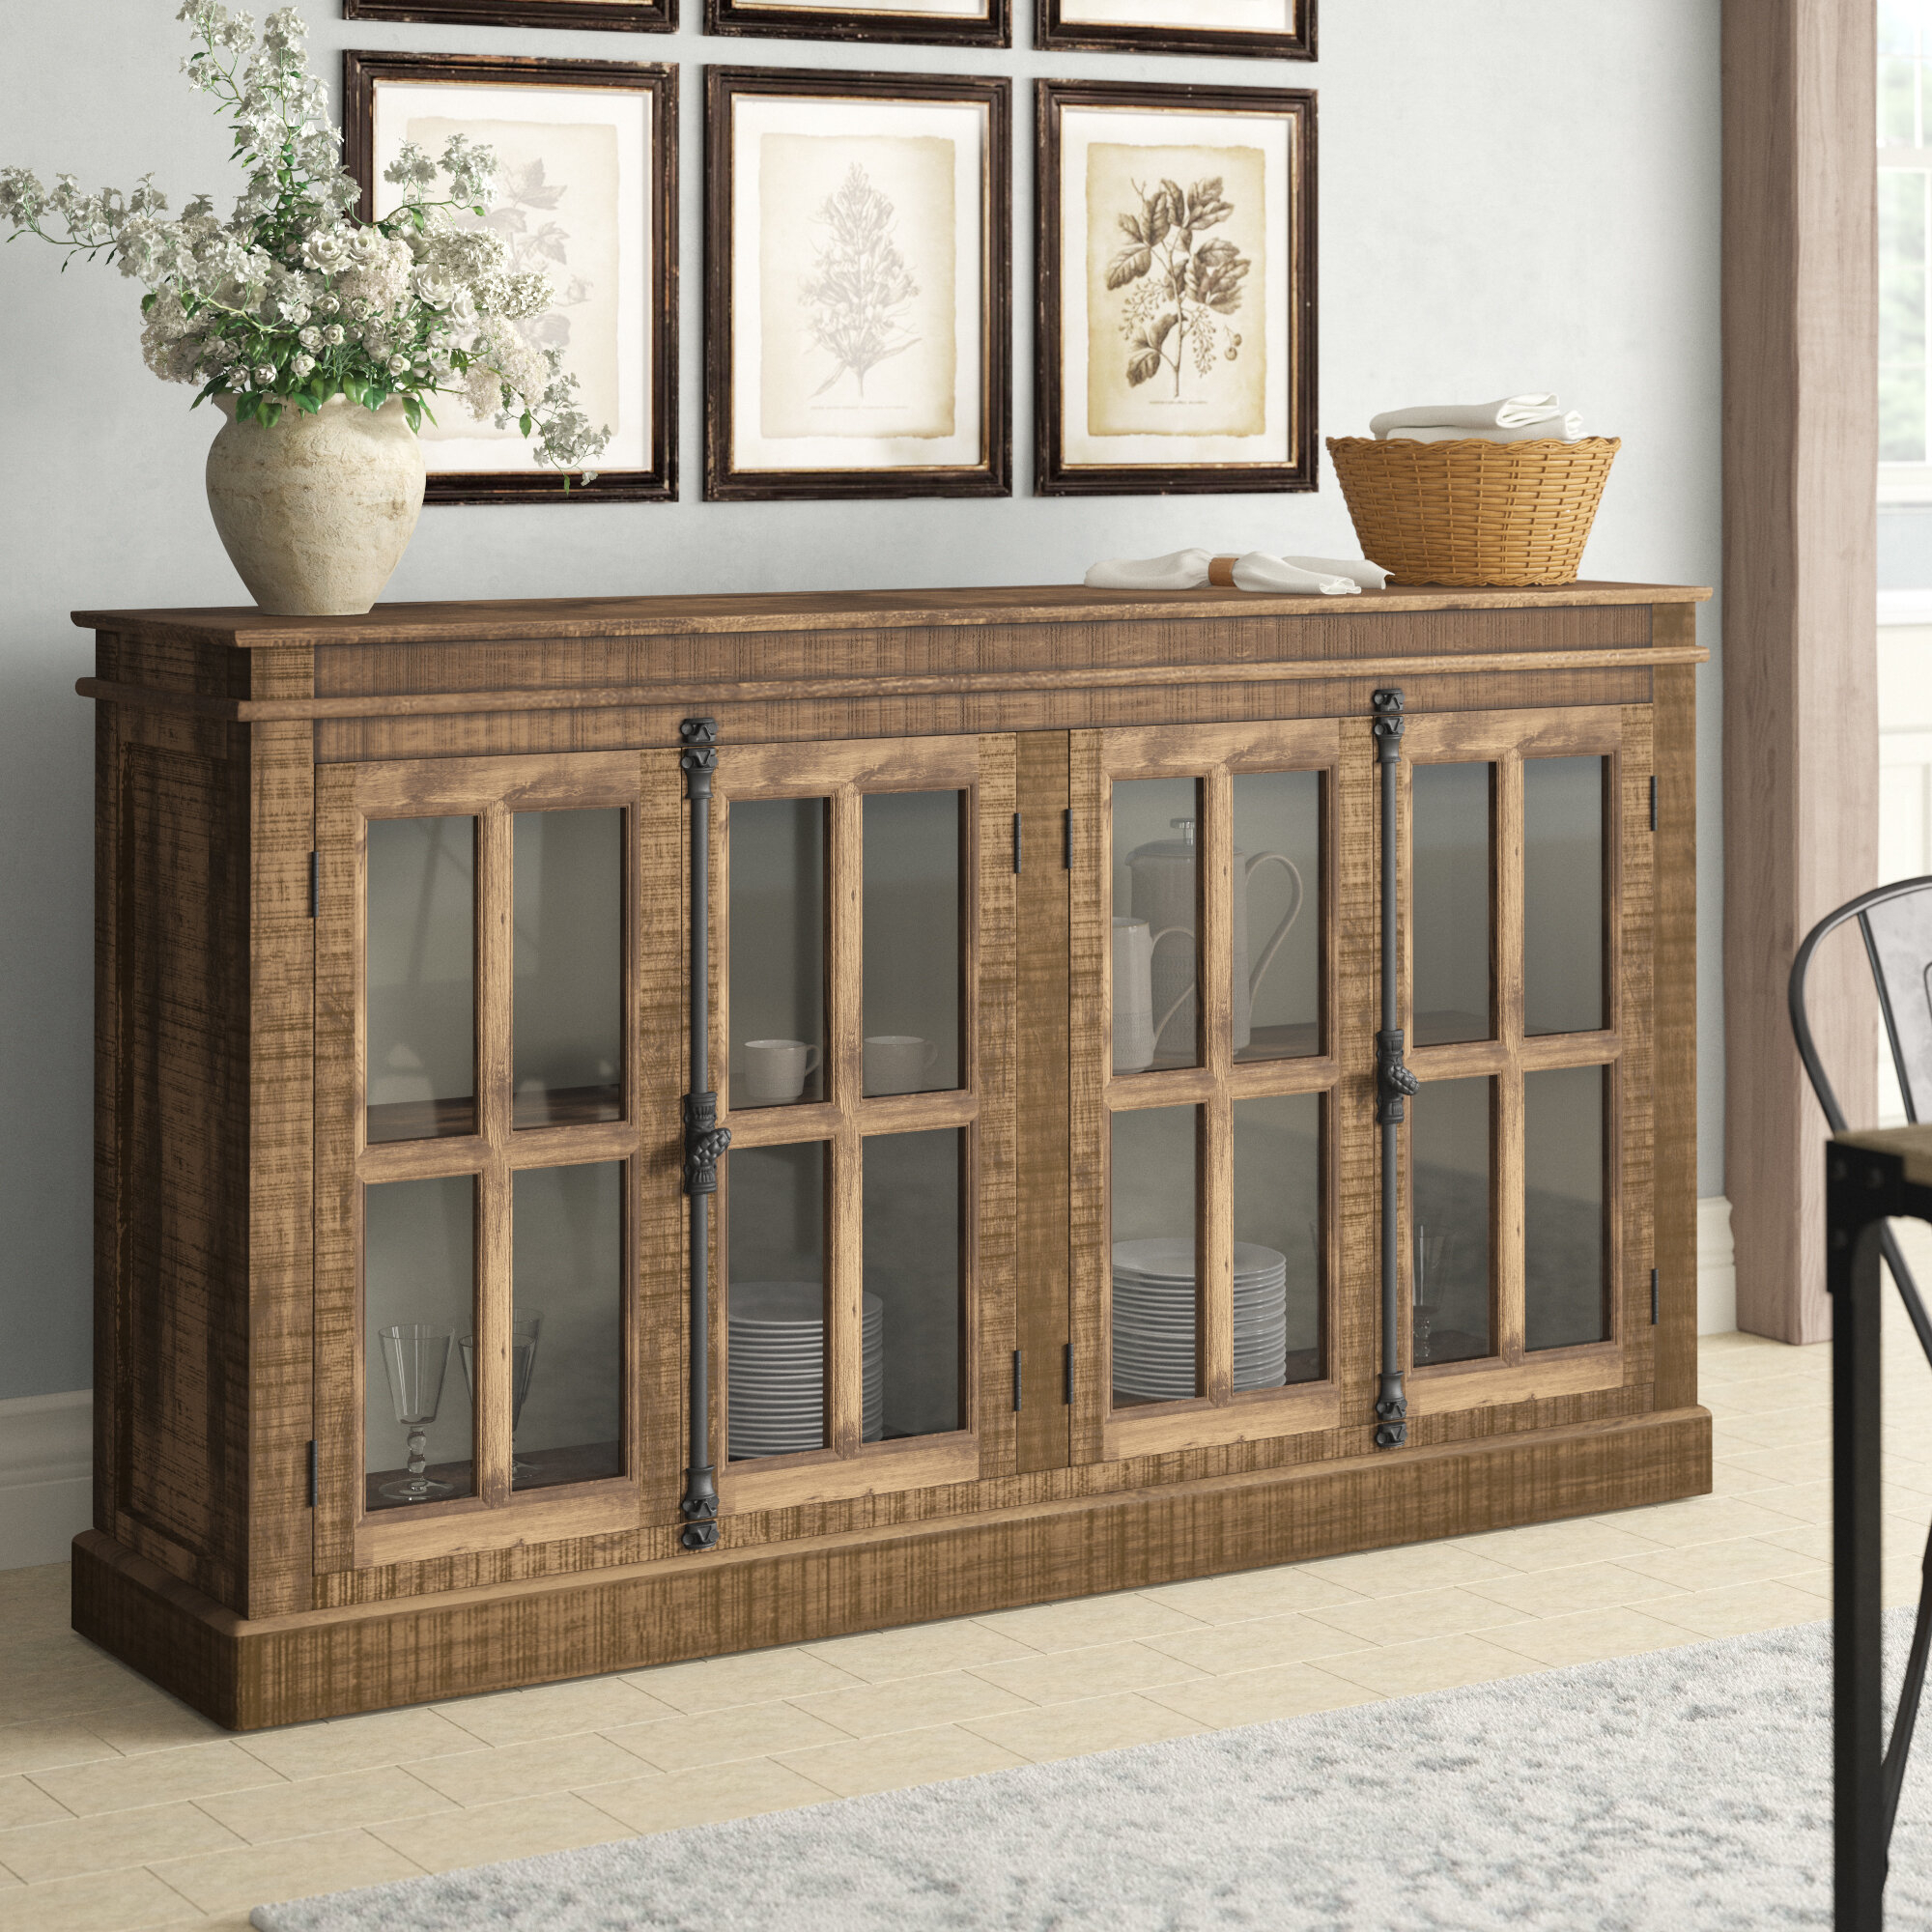 Wadley 4 Door Sideboard With Newest Jessenia Sideboards (#20 of 20)